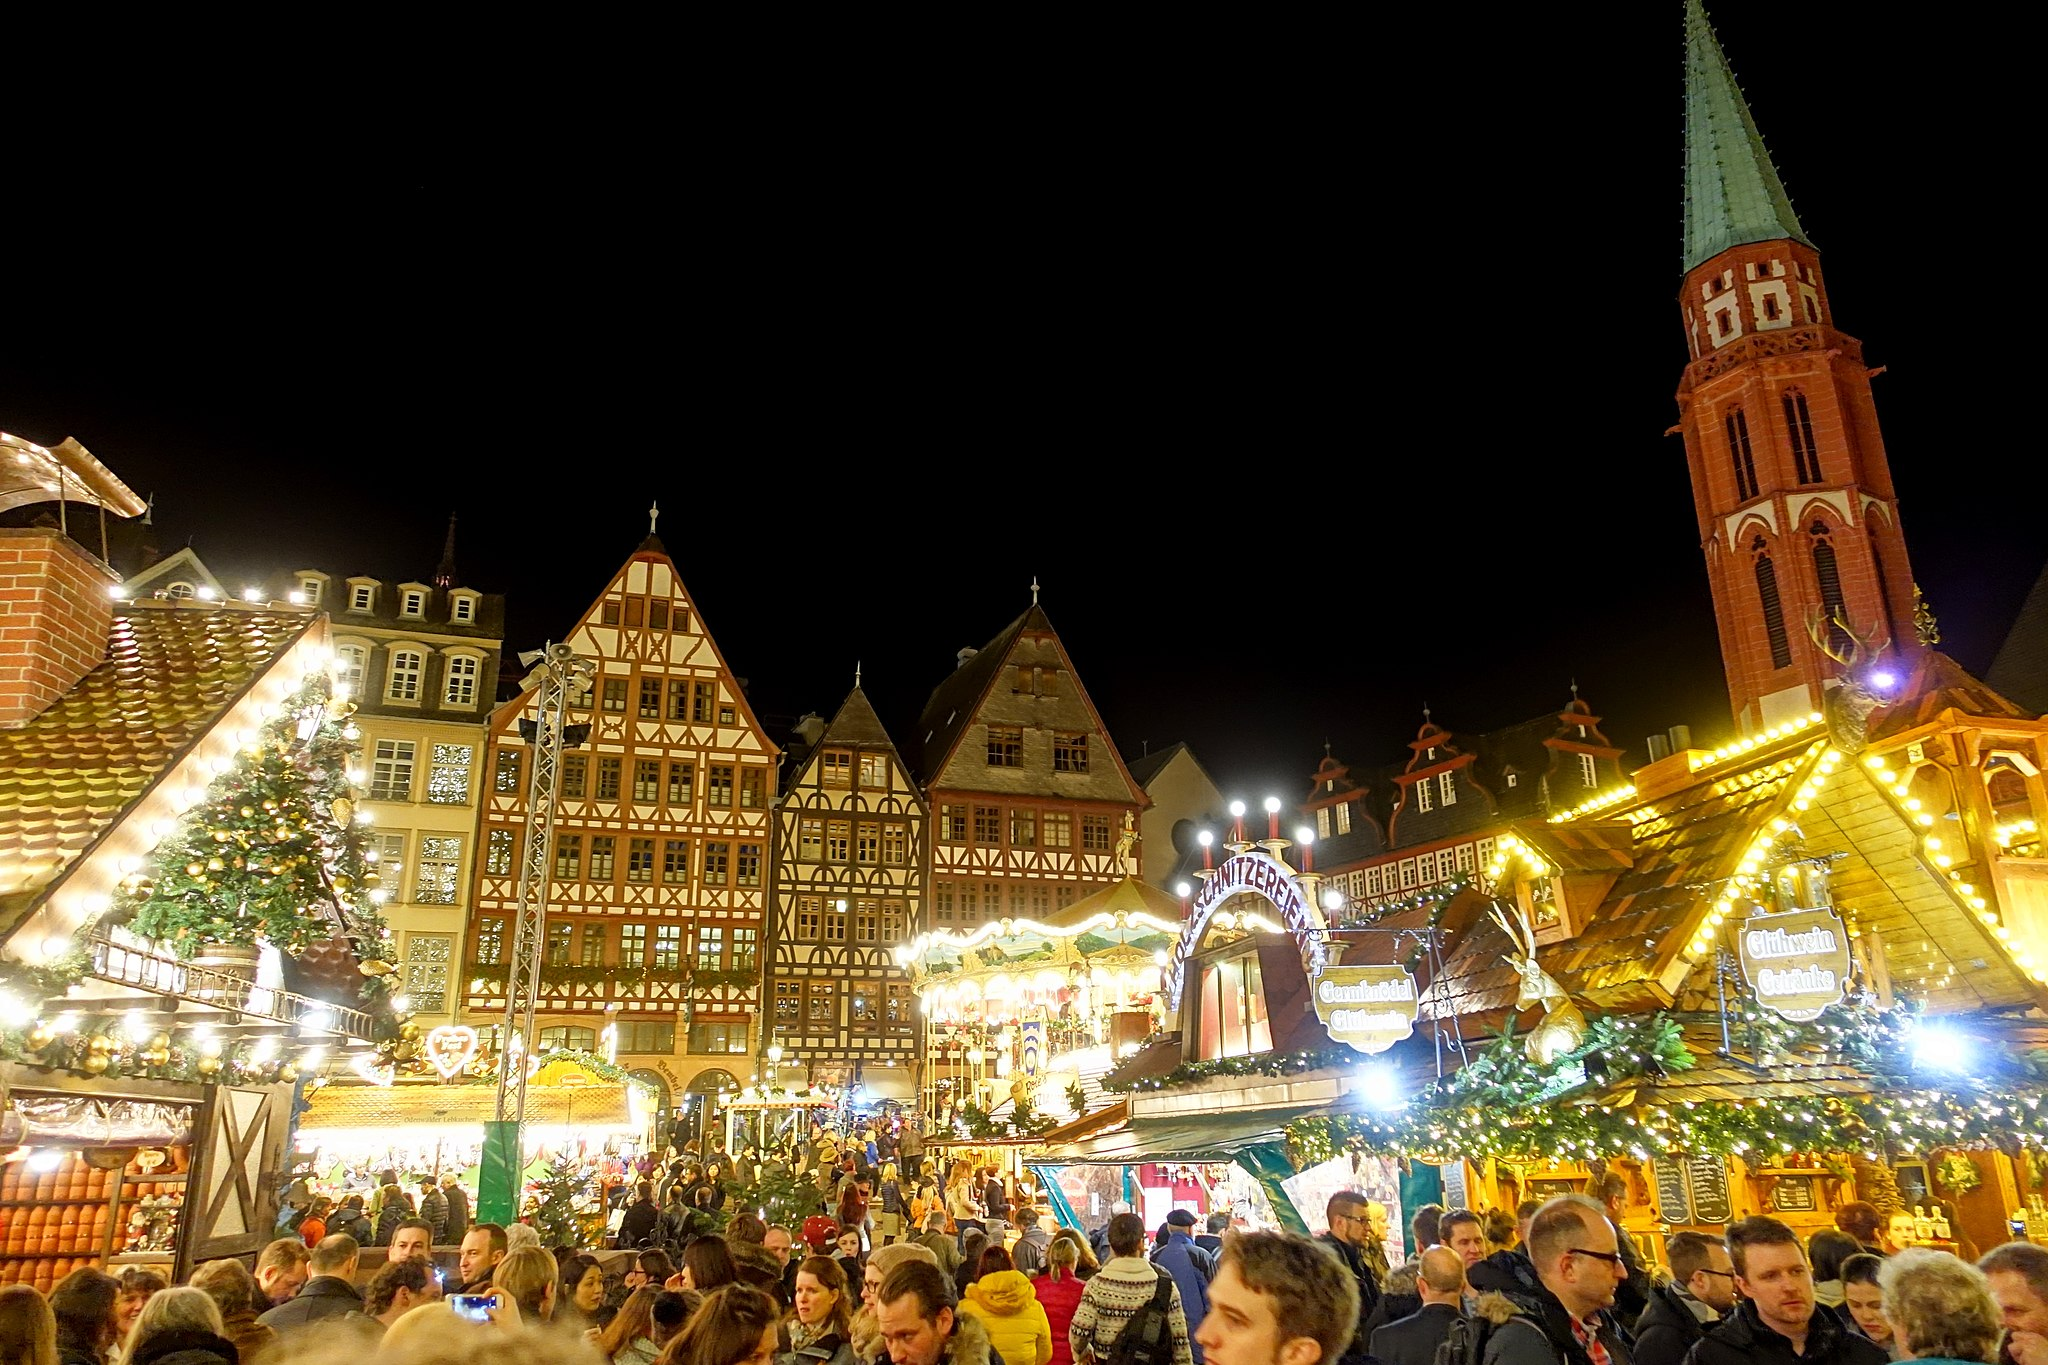 Christmas Markets In Germany 2021 Dates A Guide To The Best Christmas Markets In Germany 2021